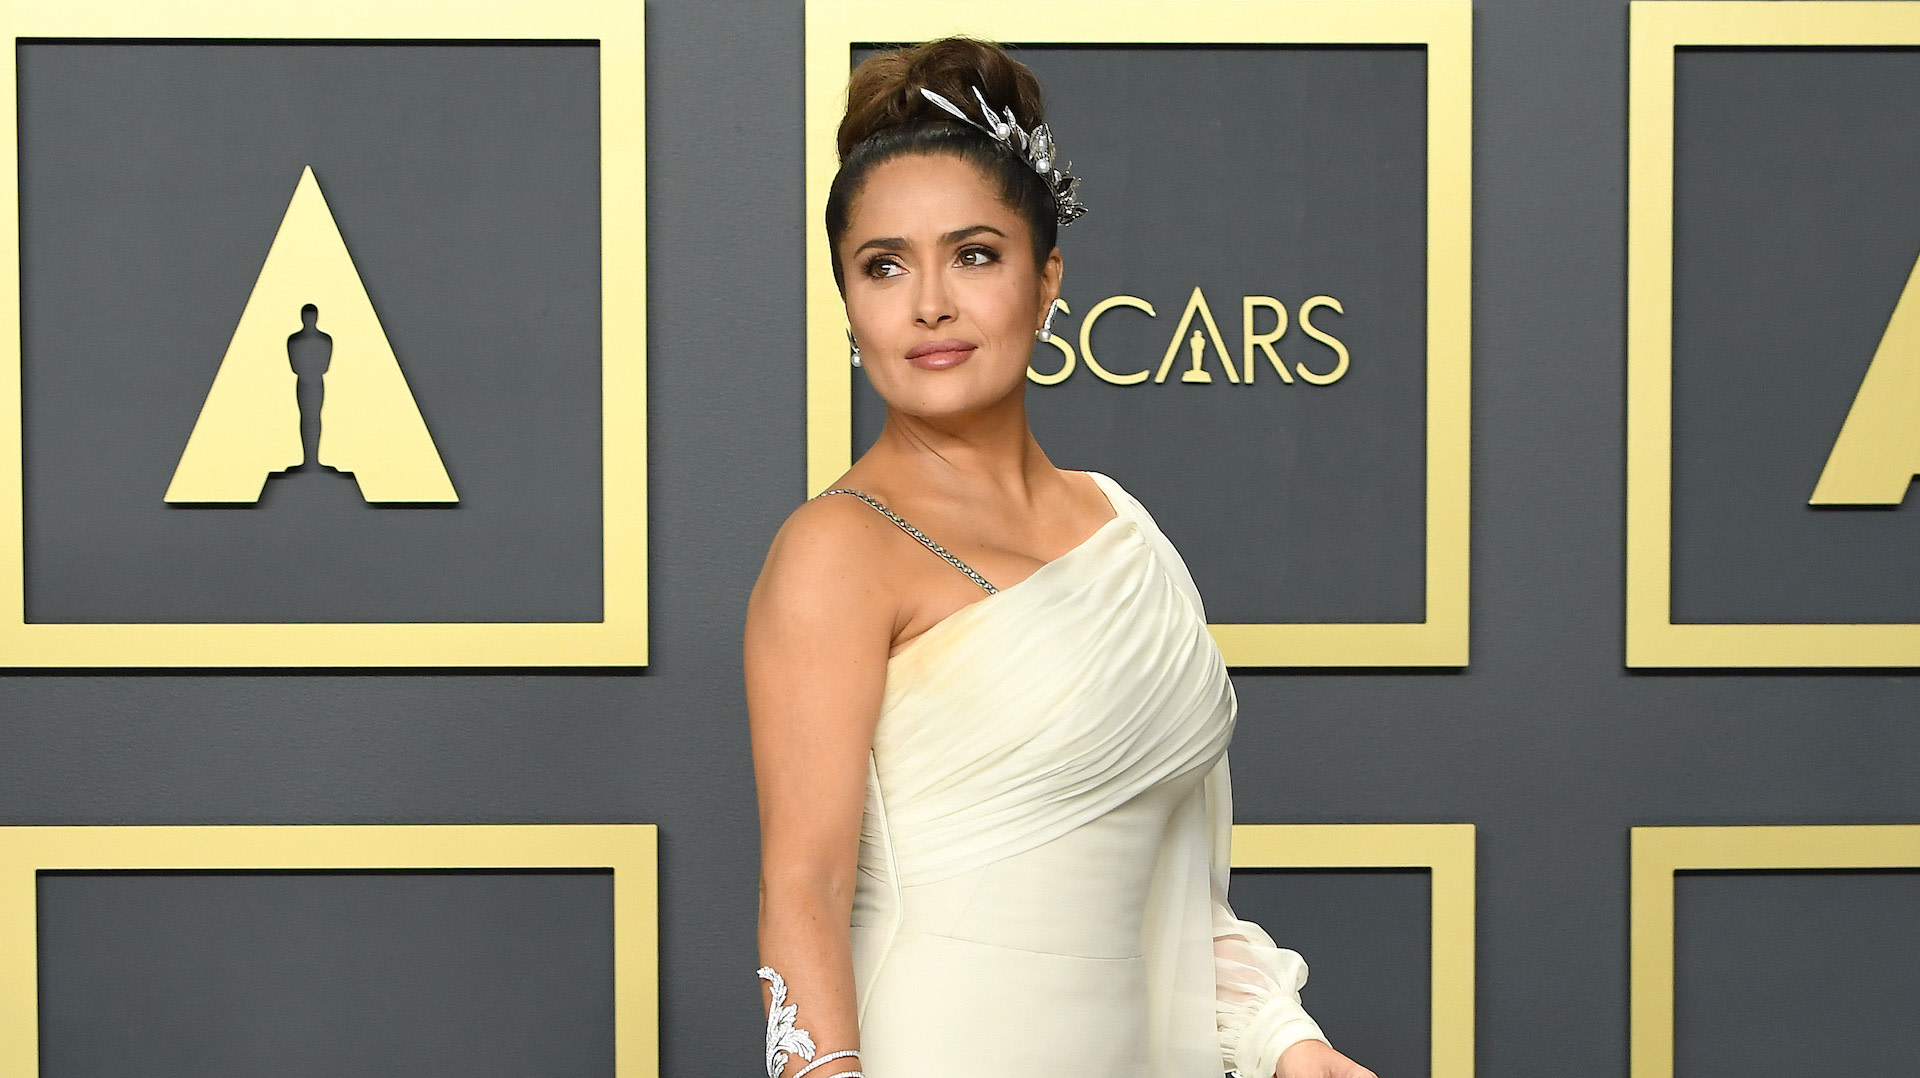 Salma Hayek Claps Back After It's Suggested She Uses Too Much Botox